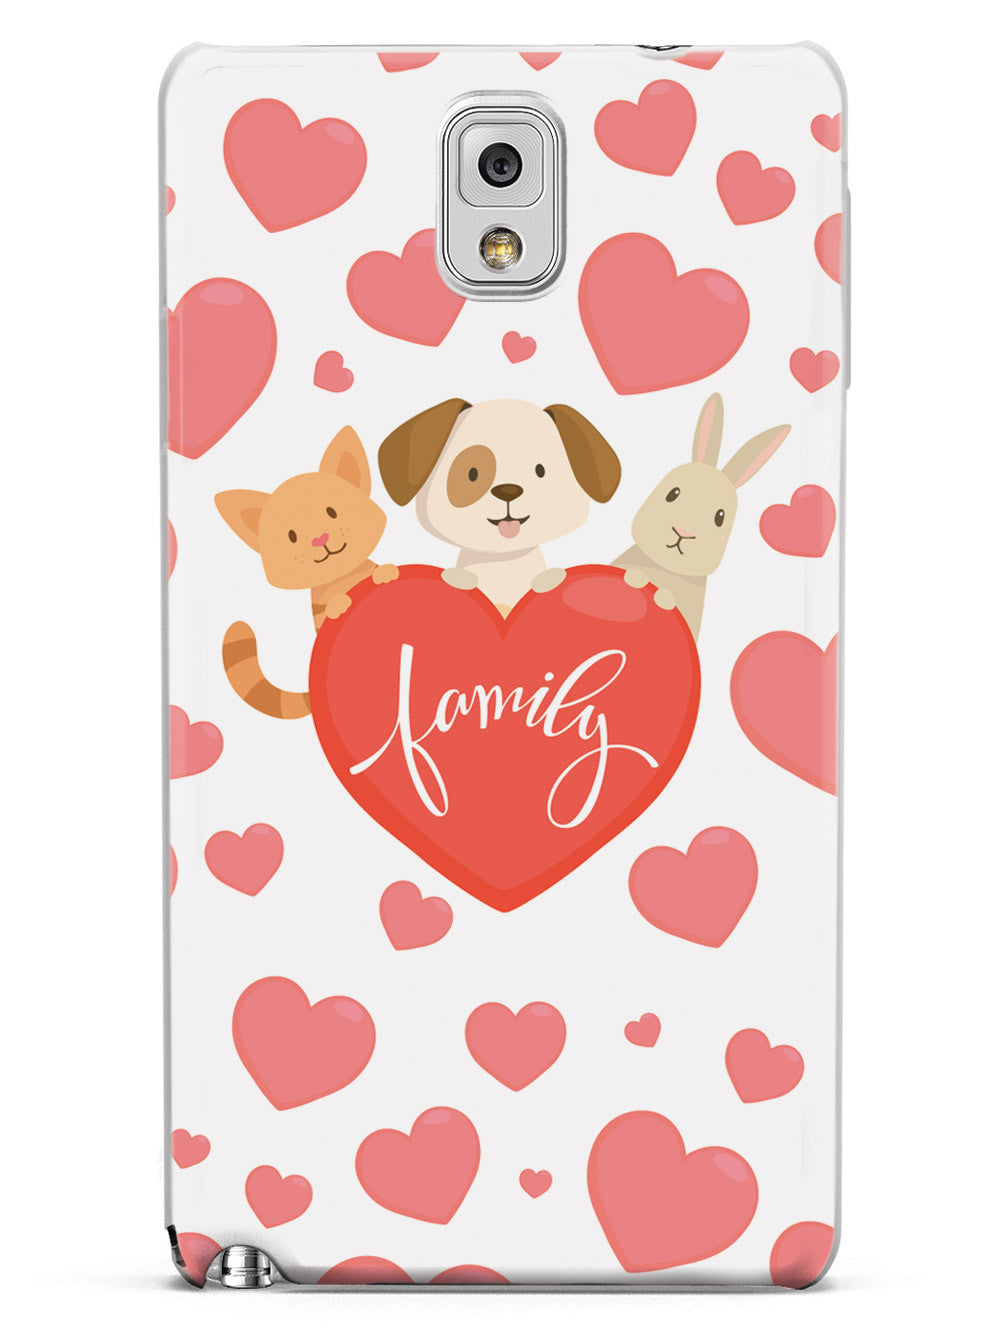 Pet Family Heart - White Case